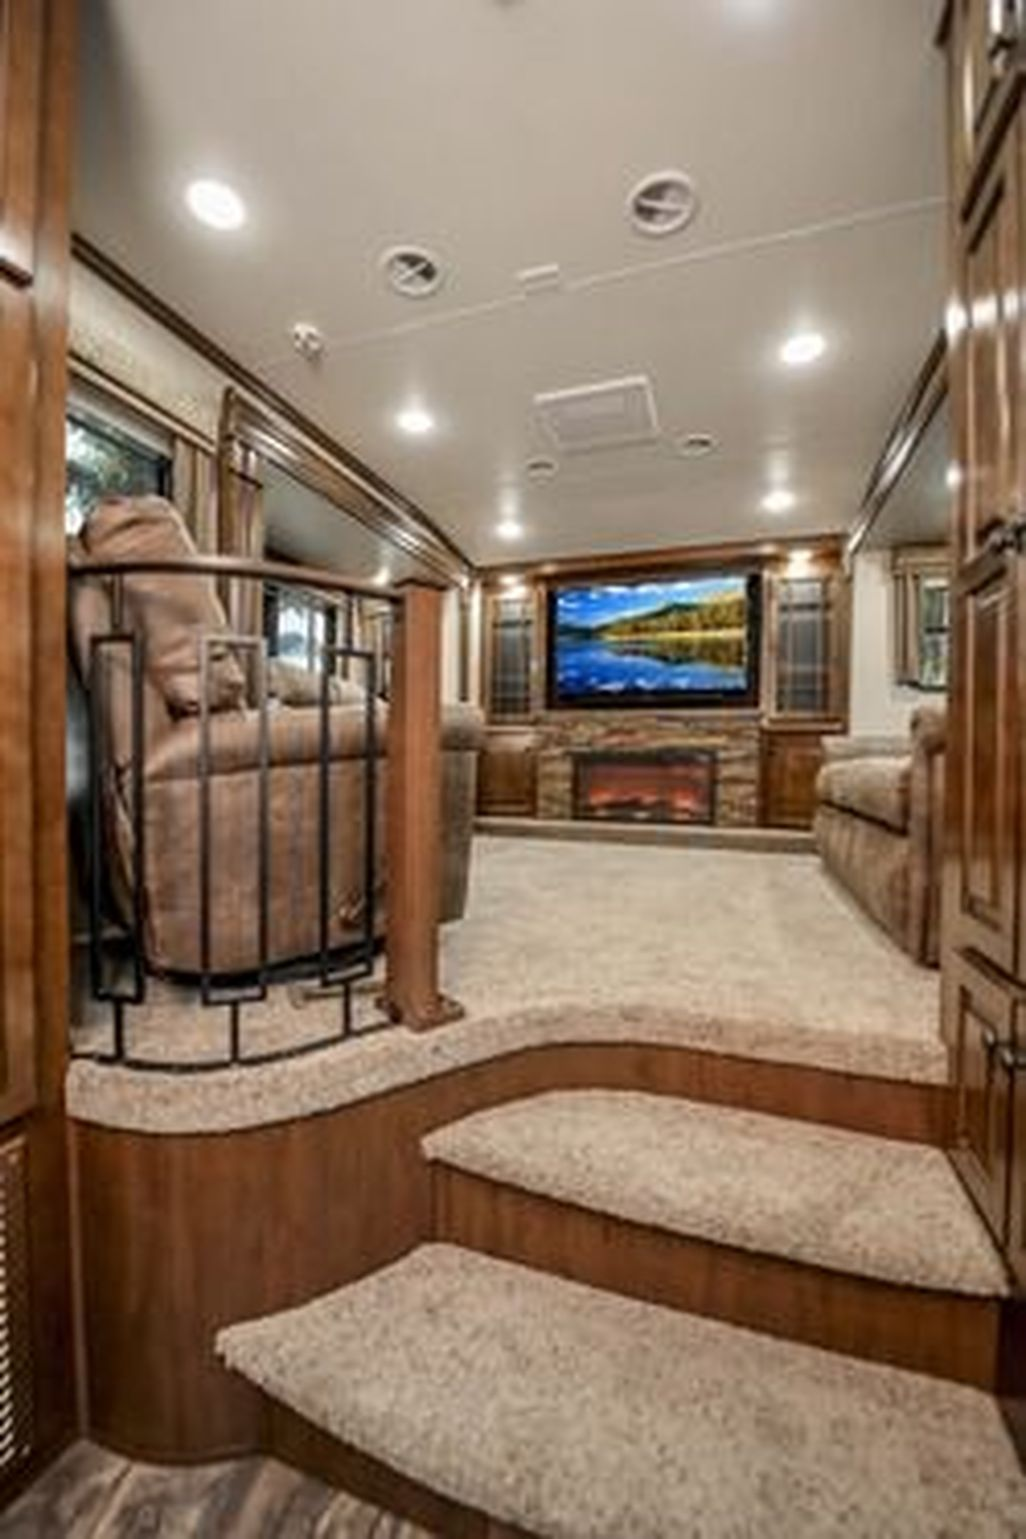 42 Amazing Luxury Travel Trailers Interior Design Ideas Luxury